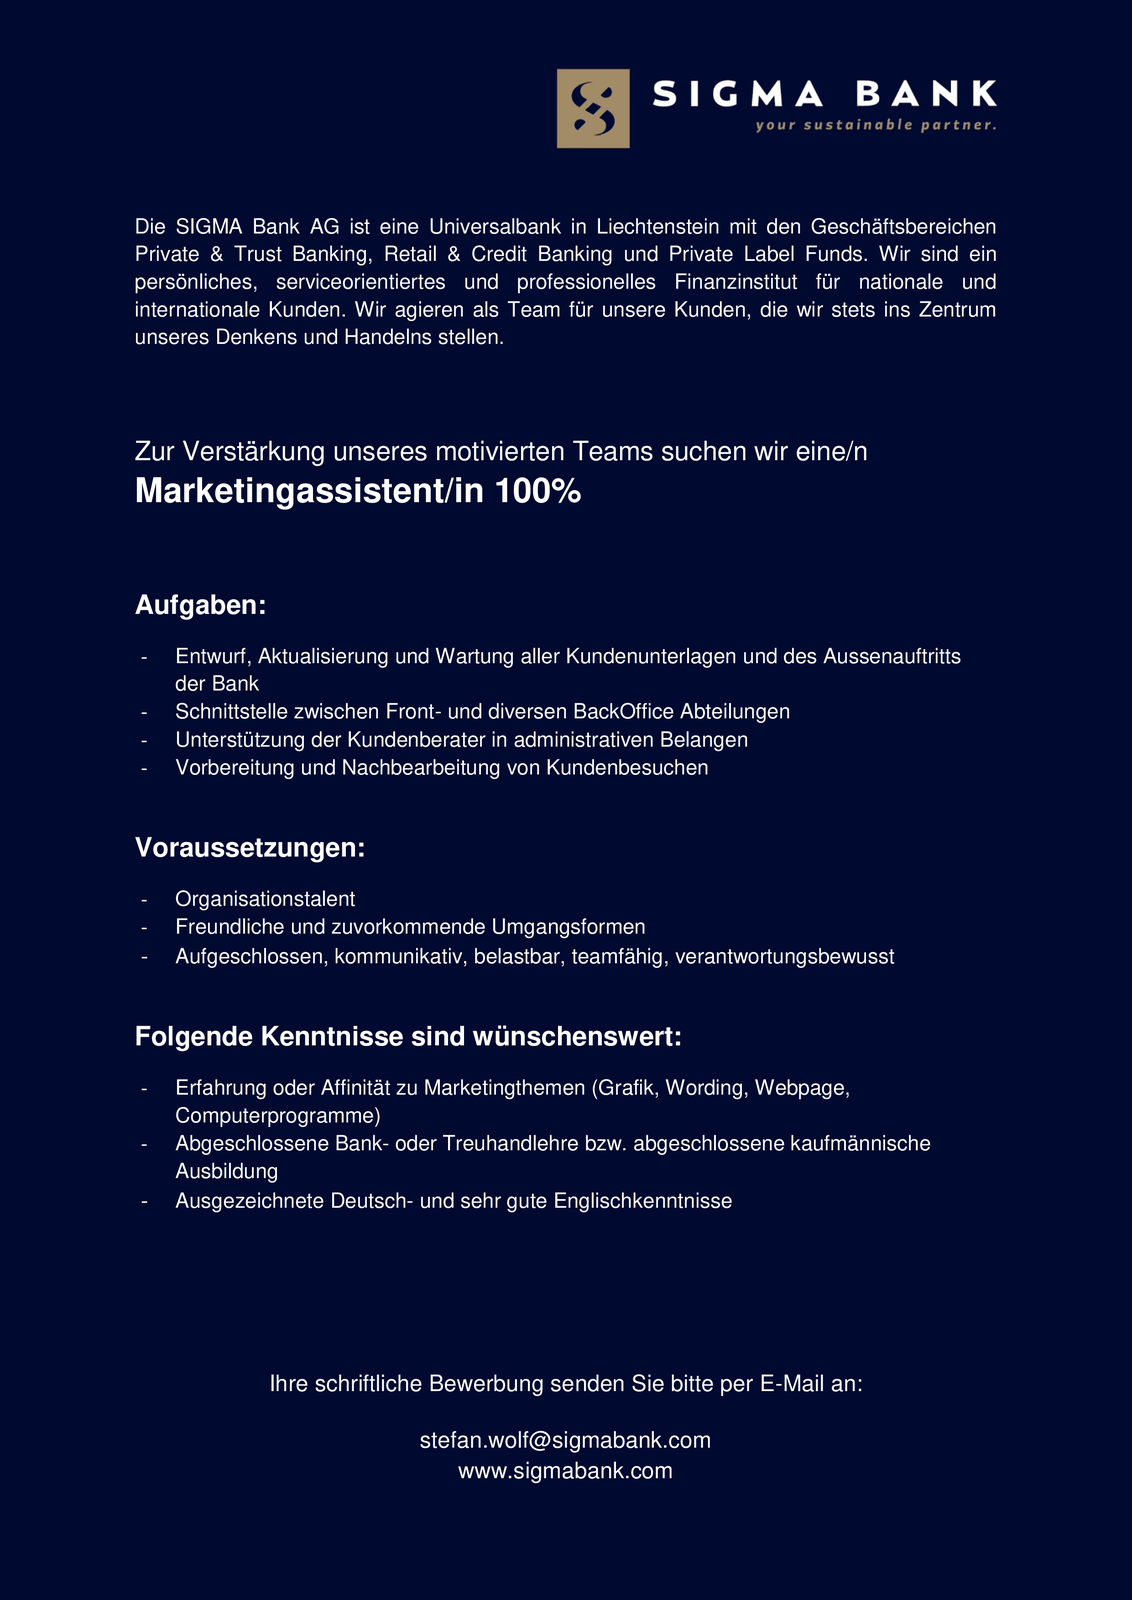 Marketingassistent/in 100%